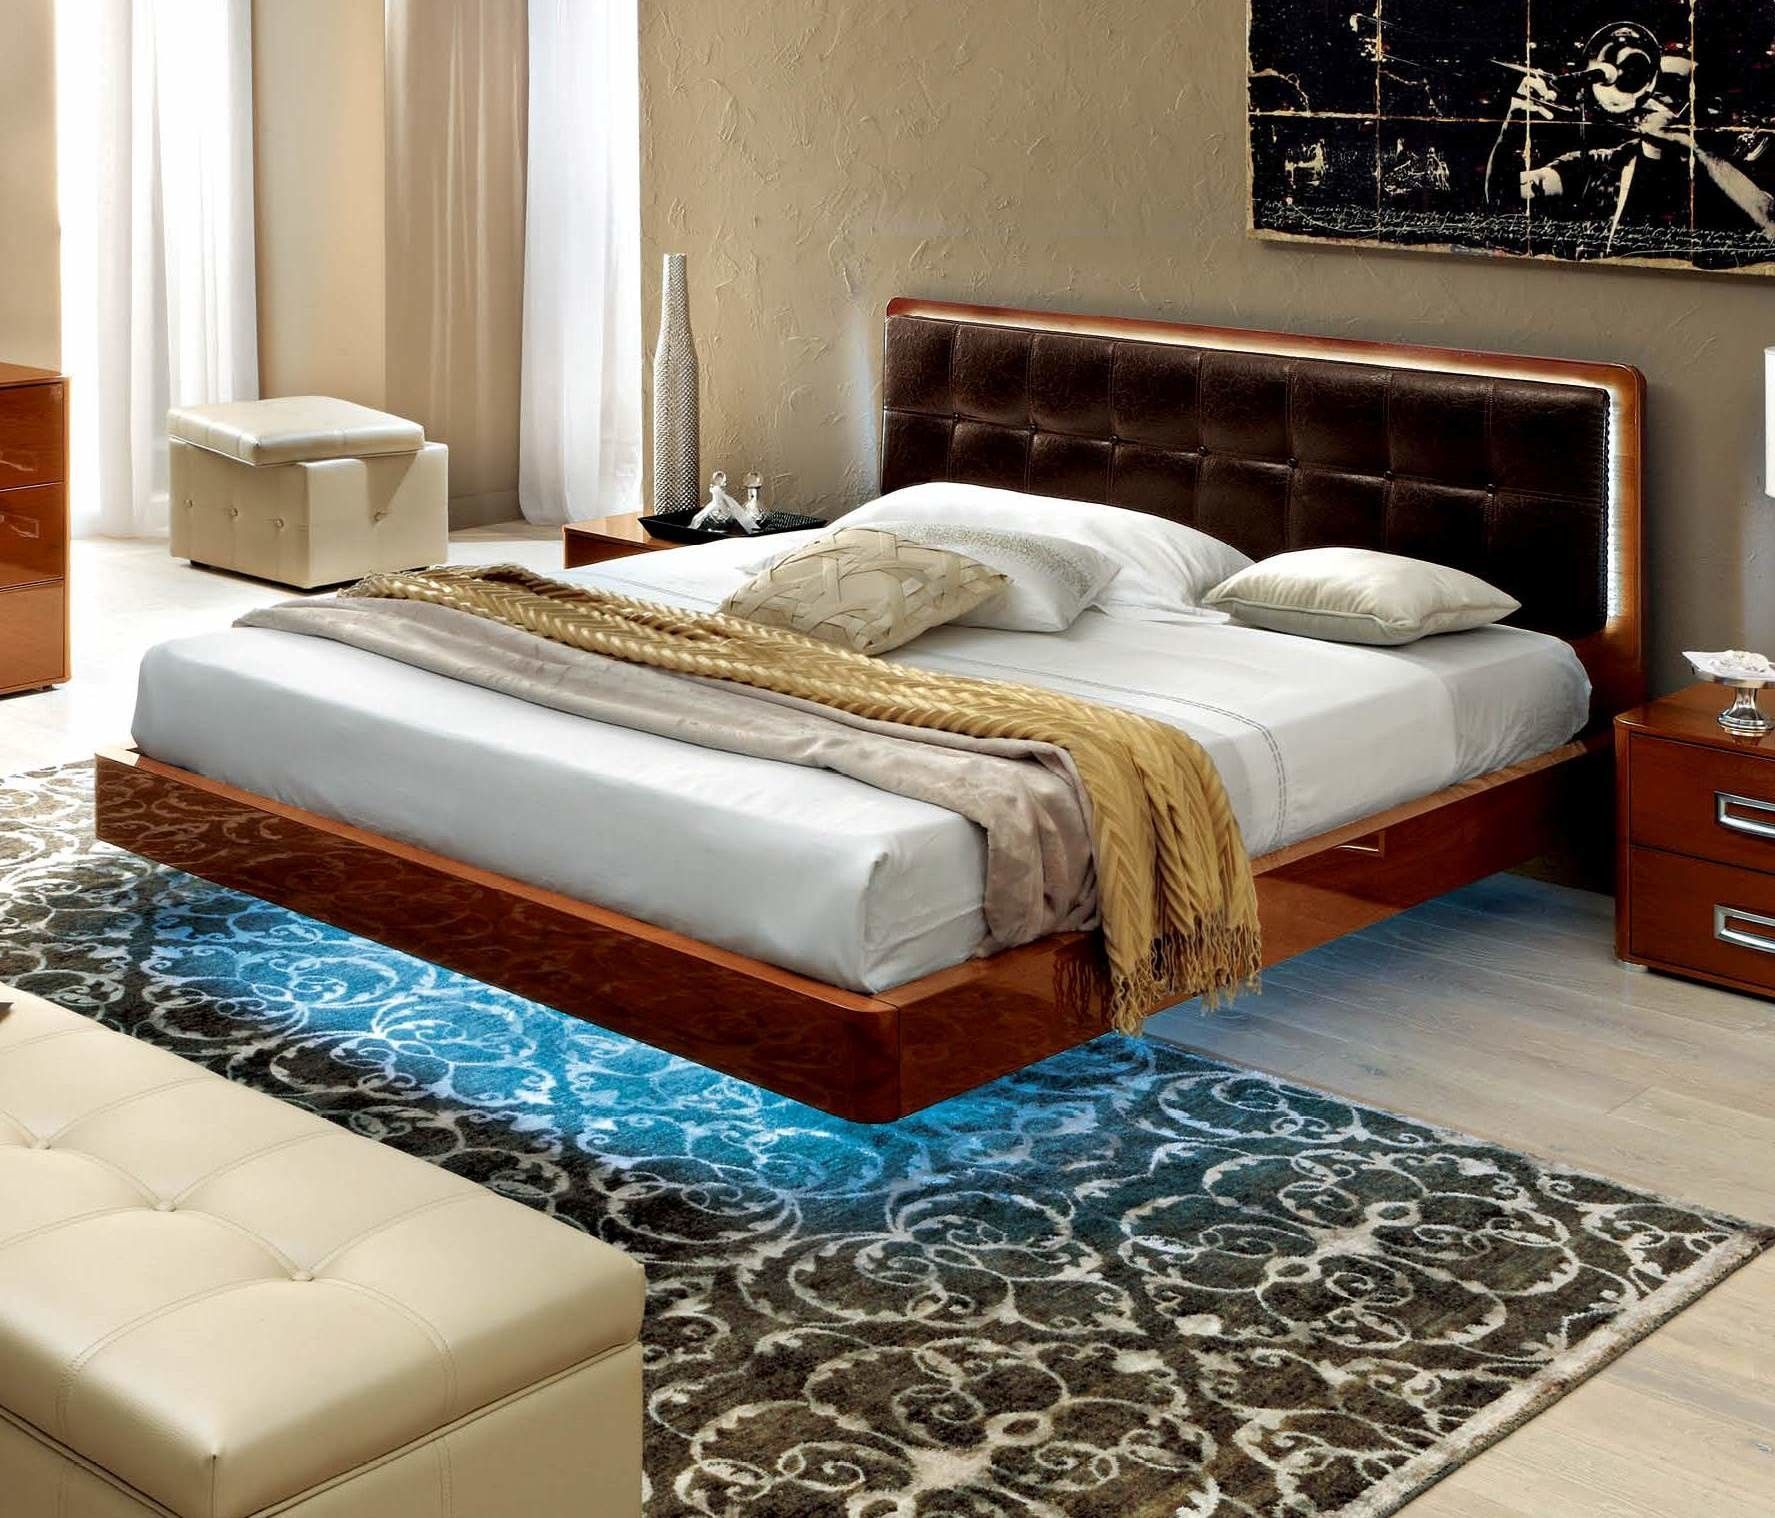 Plano Upholstered Paltform Bed Upholstered Platform Bed Leather